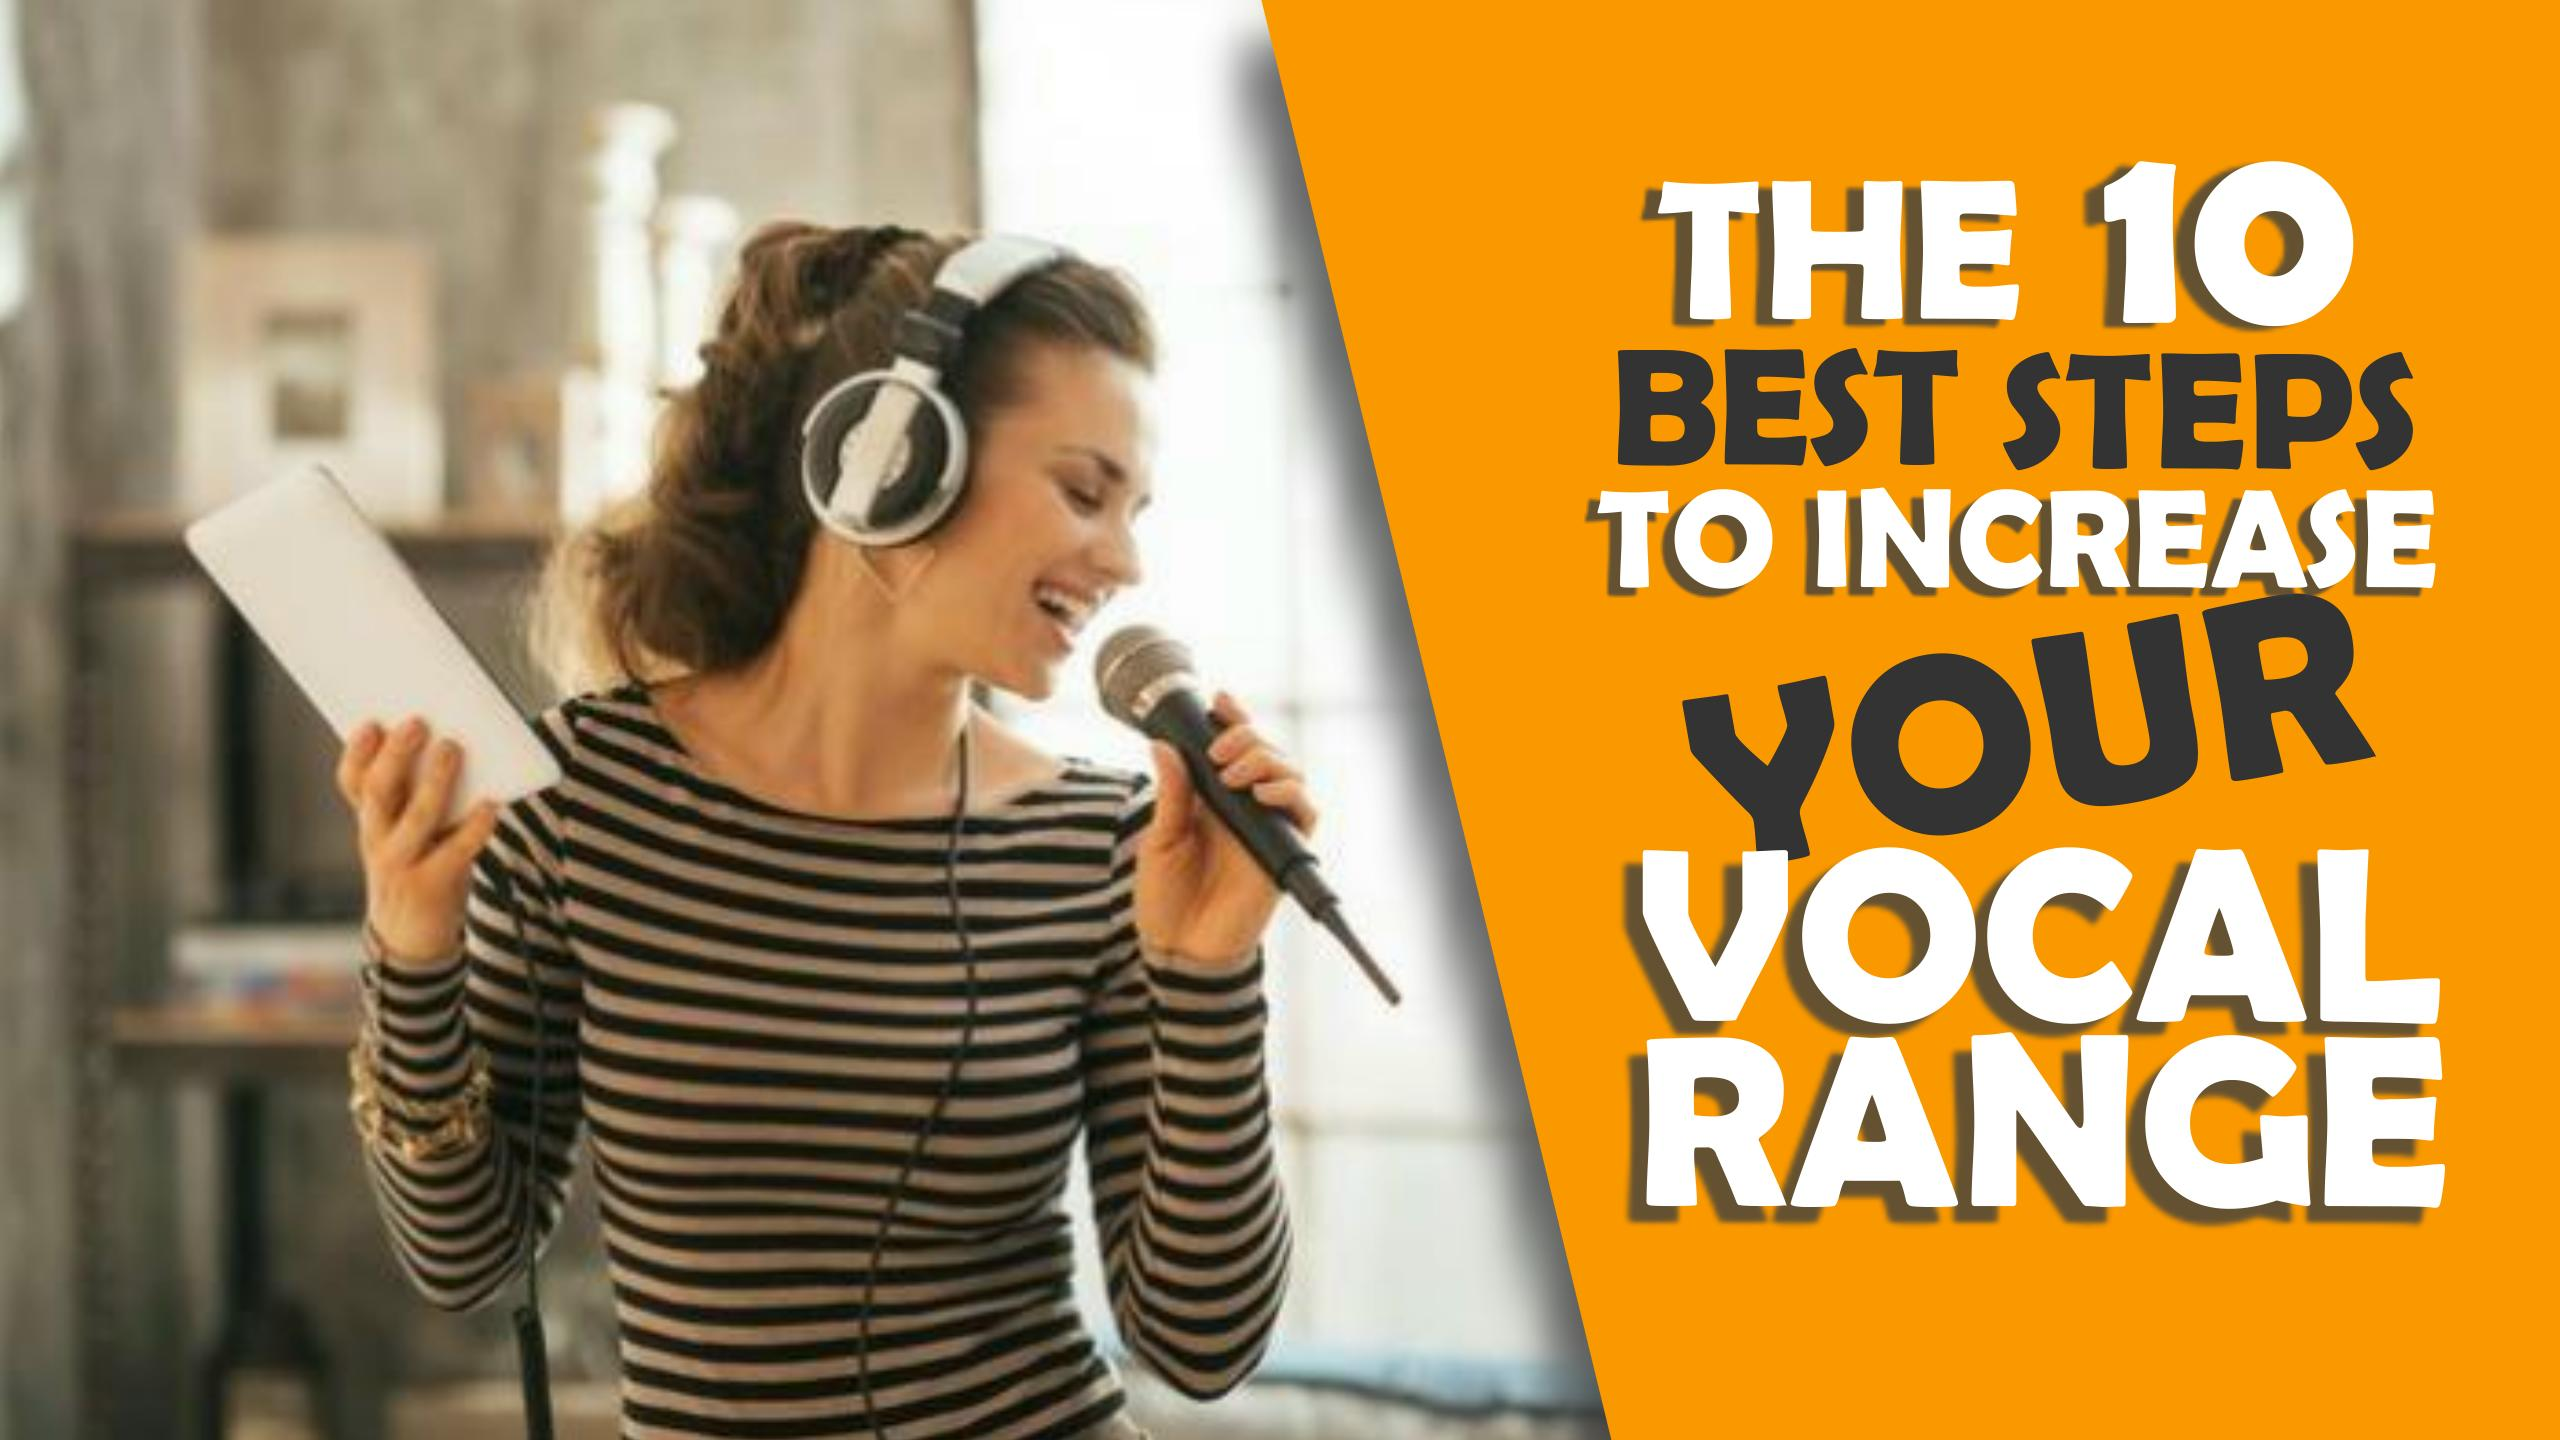 THE TEN BEST STEPS TO INCREASE YOUR VOCAL RANGE